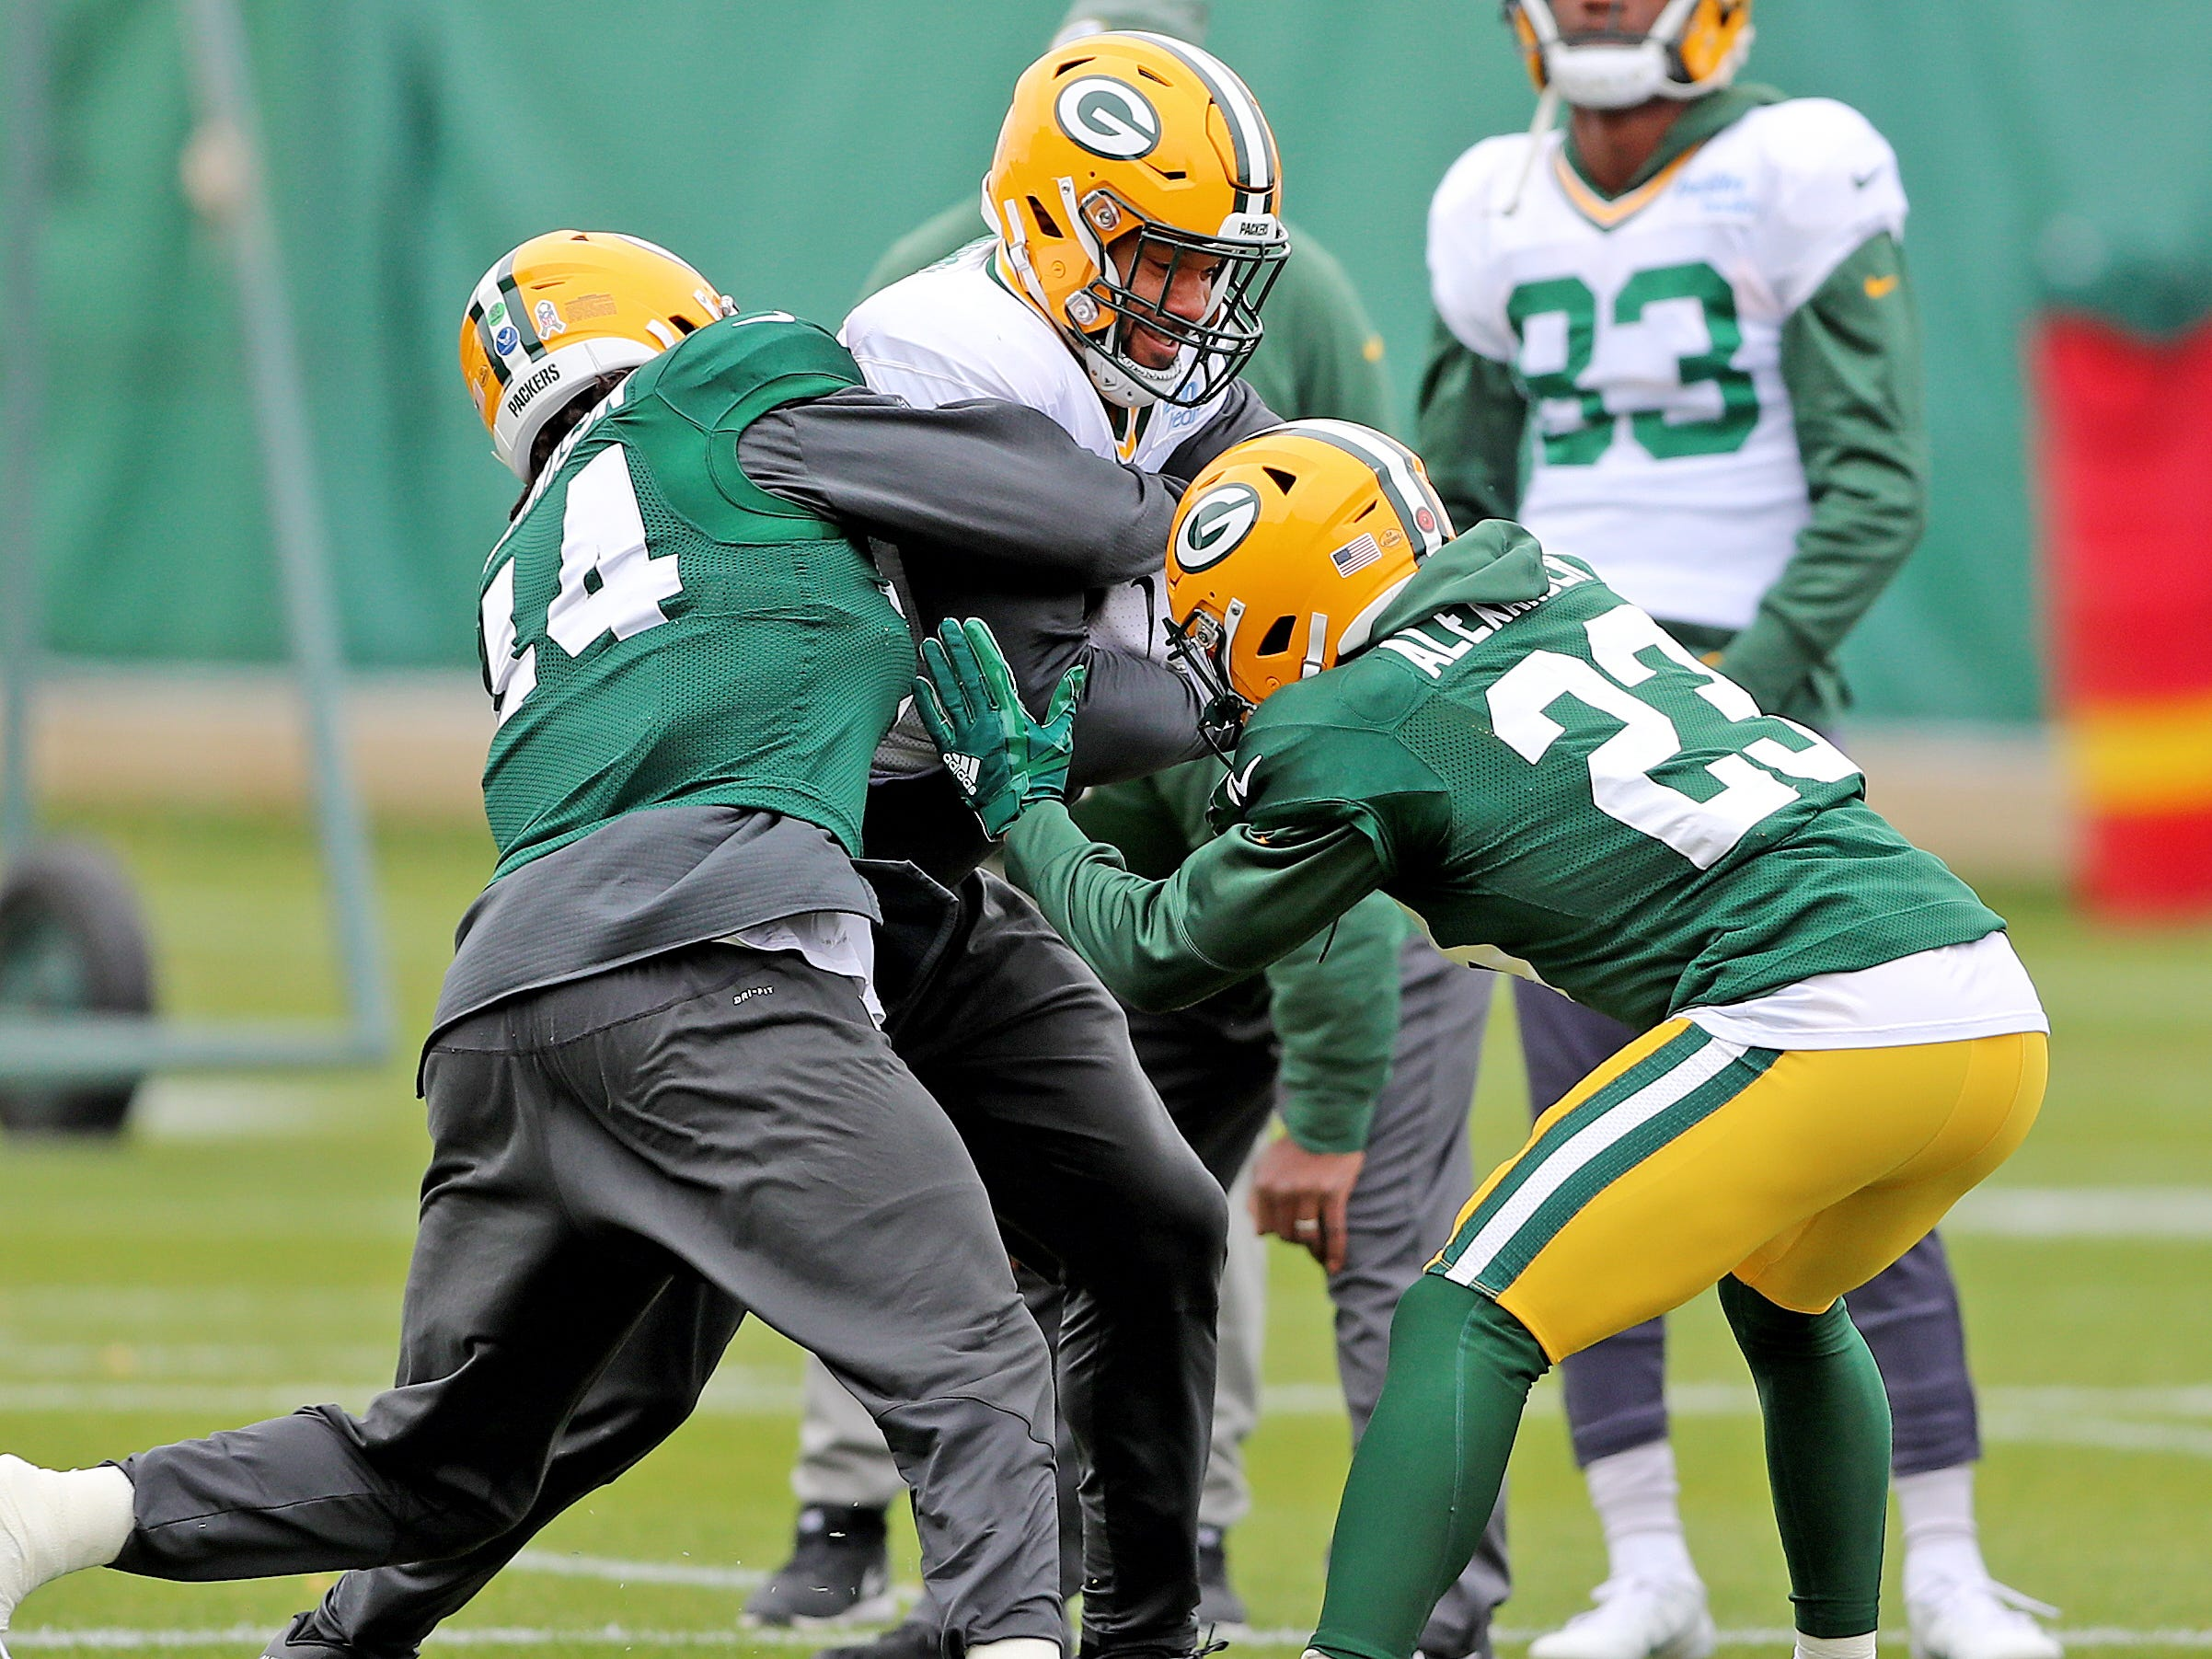 Green Bay Packers tight end Lance Kendricks (84) battles with inside linebacker Antonio Morrison (44) and cornerback Jaire Alexander (23) during practice Thursday, November 8, 2018 at the Don Hutson Center in Ashwaubenon, Wis.